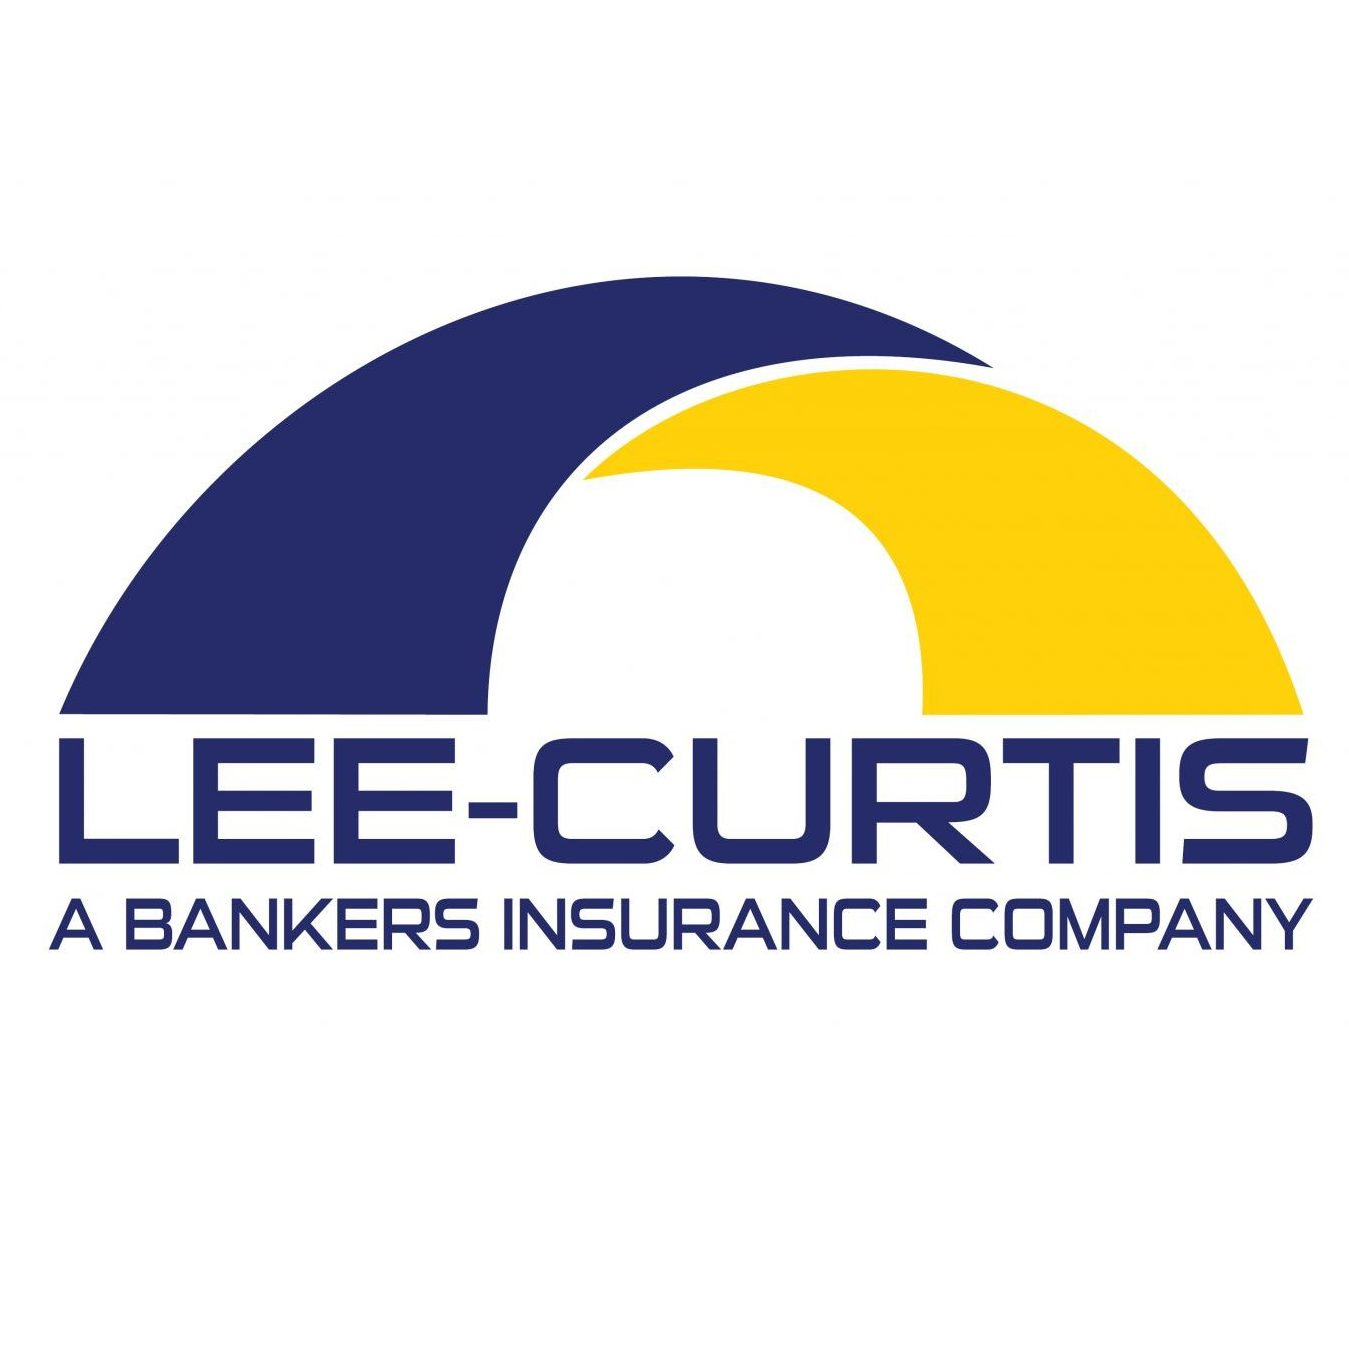 Lee-Curtis logo